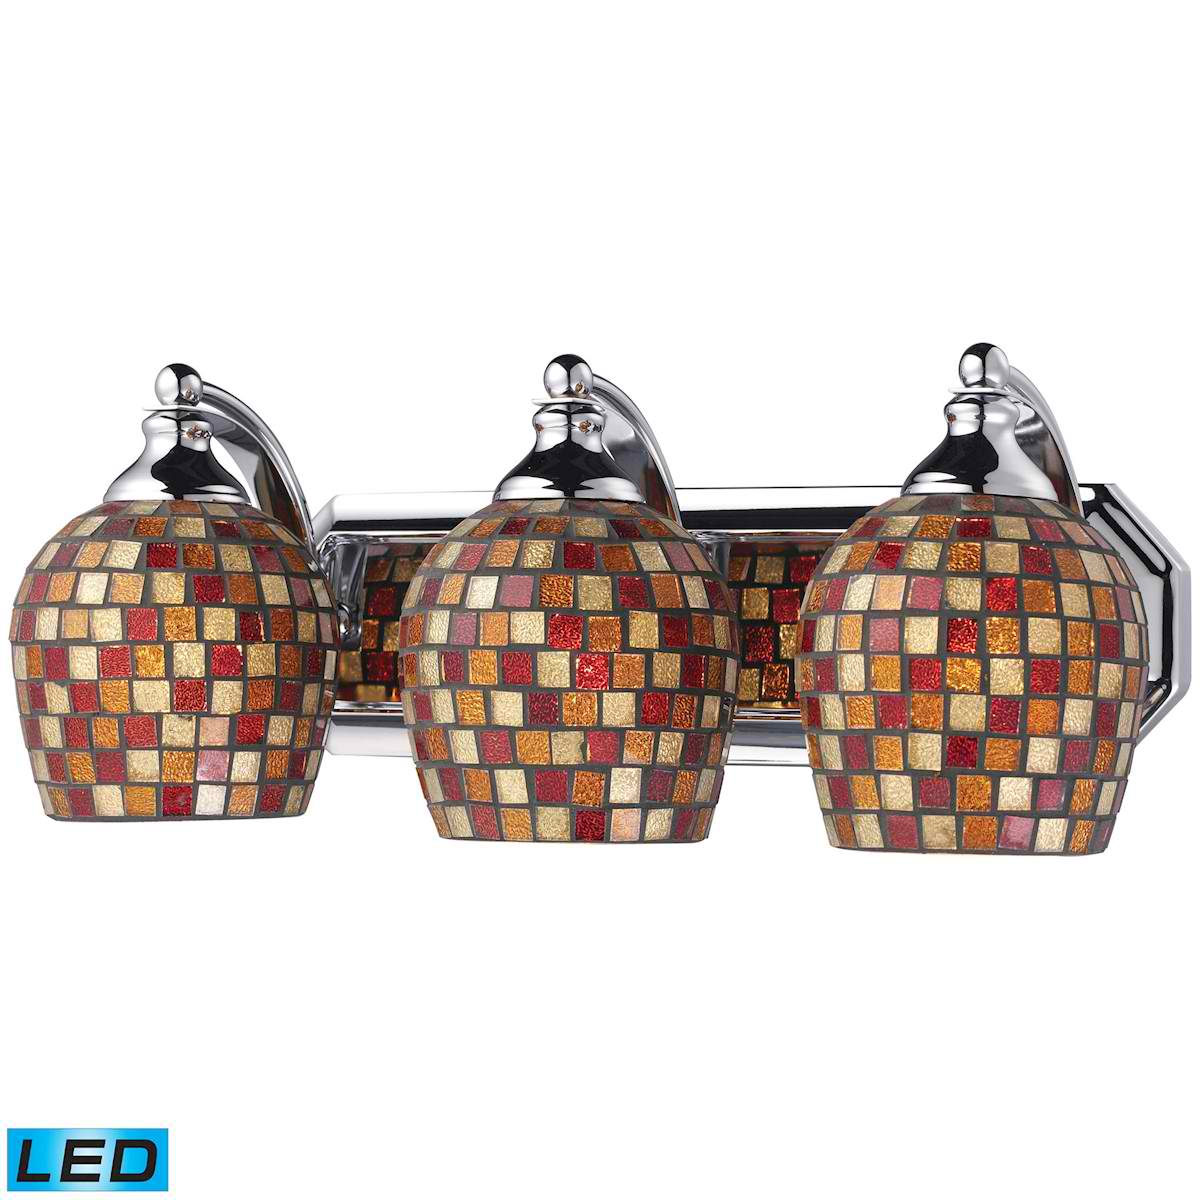 3 Light Vanity in Polished Chrome and Multi Mosaic Glass - LED, 800 Lumens (2400 Lumens Total) With Full Scale